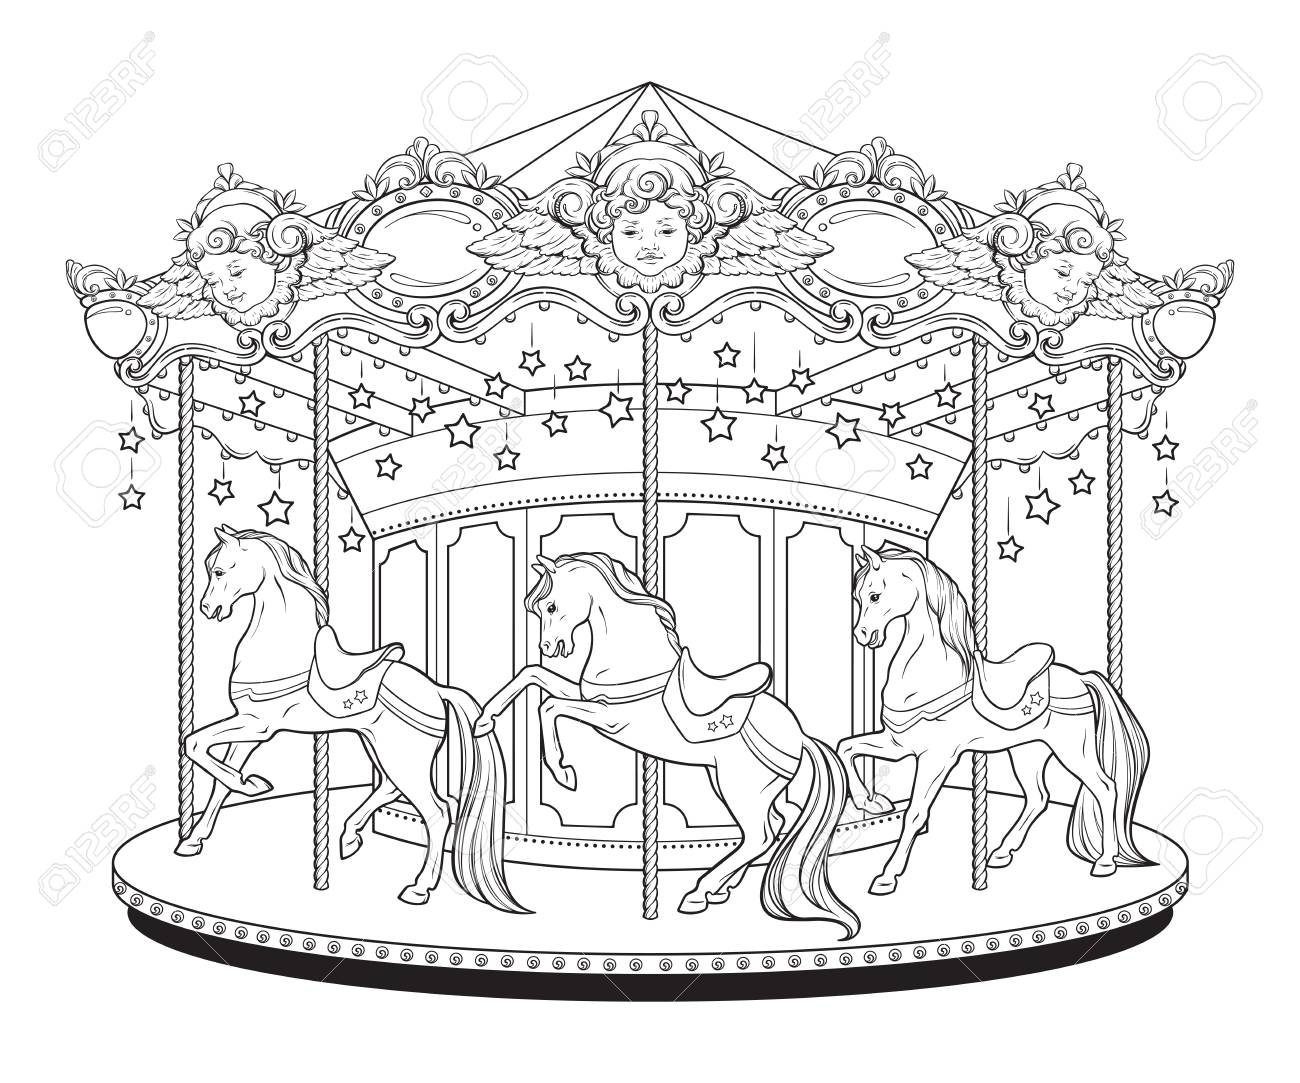 Carousel la belle epoque, cute merry go round with horses coloring..